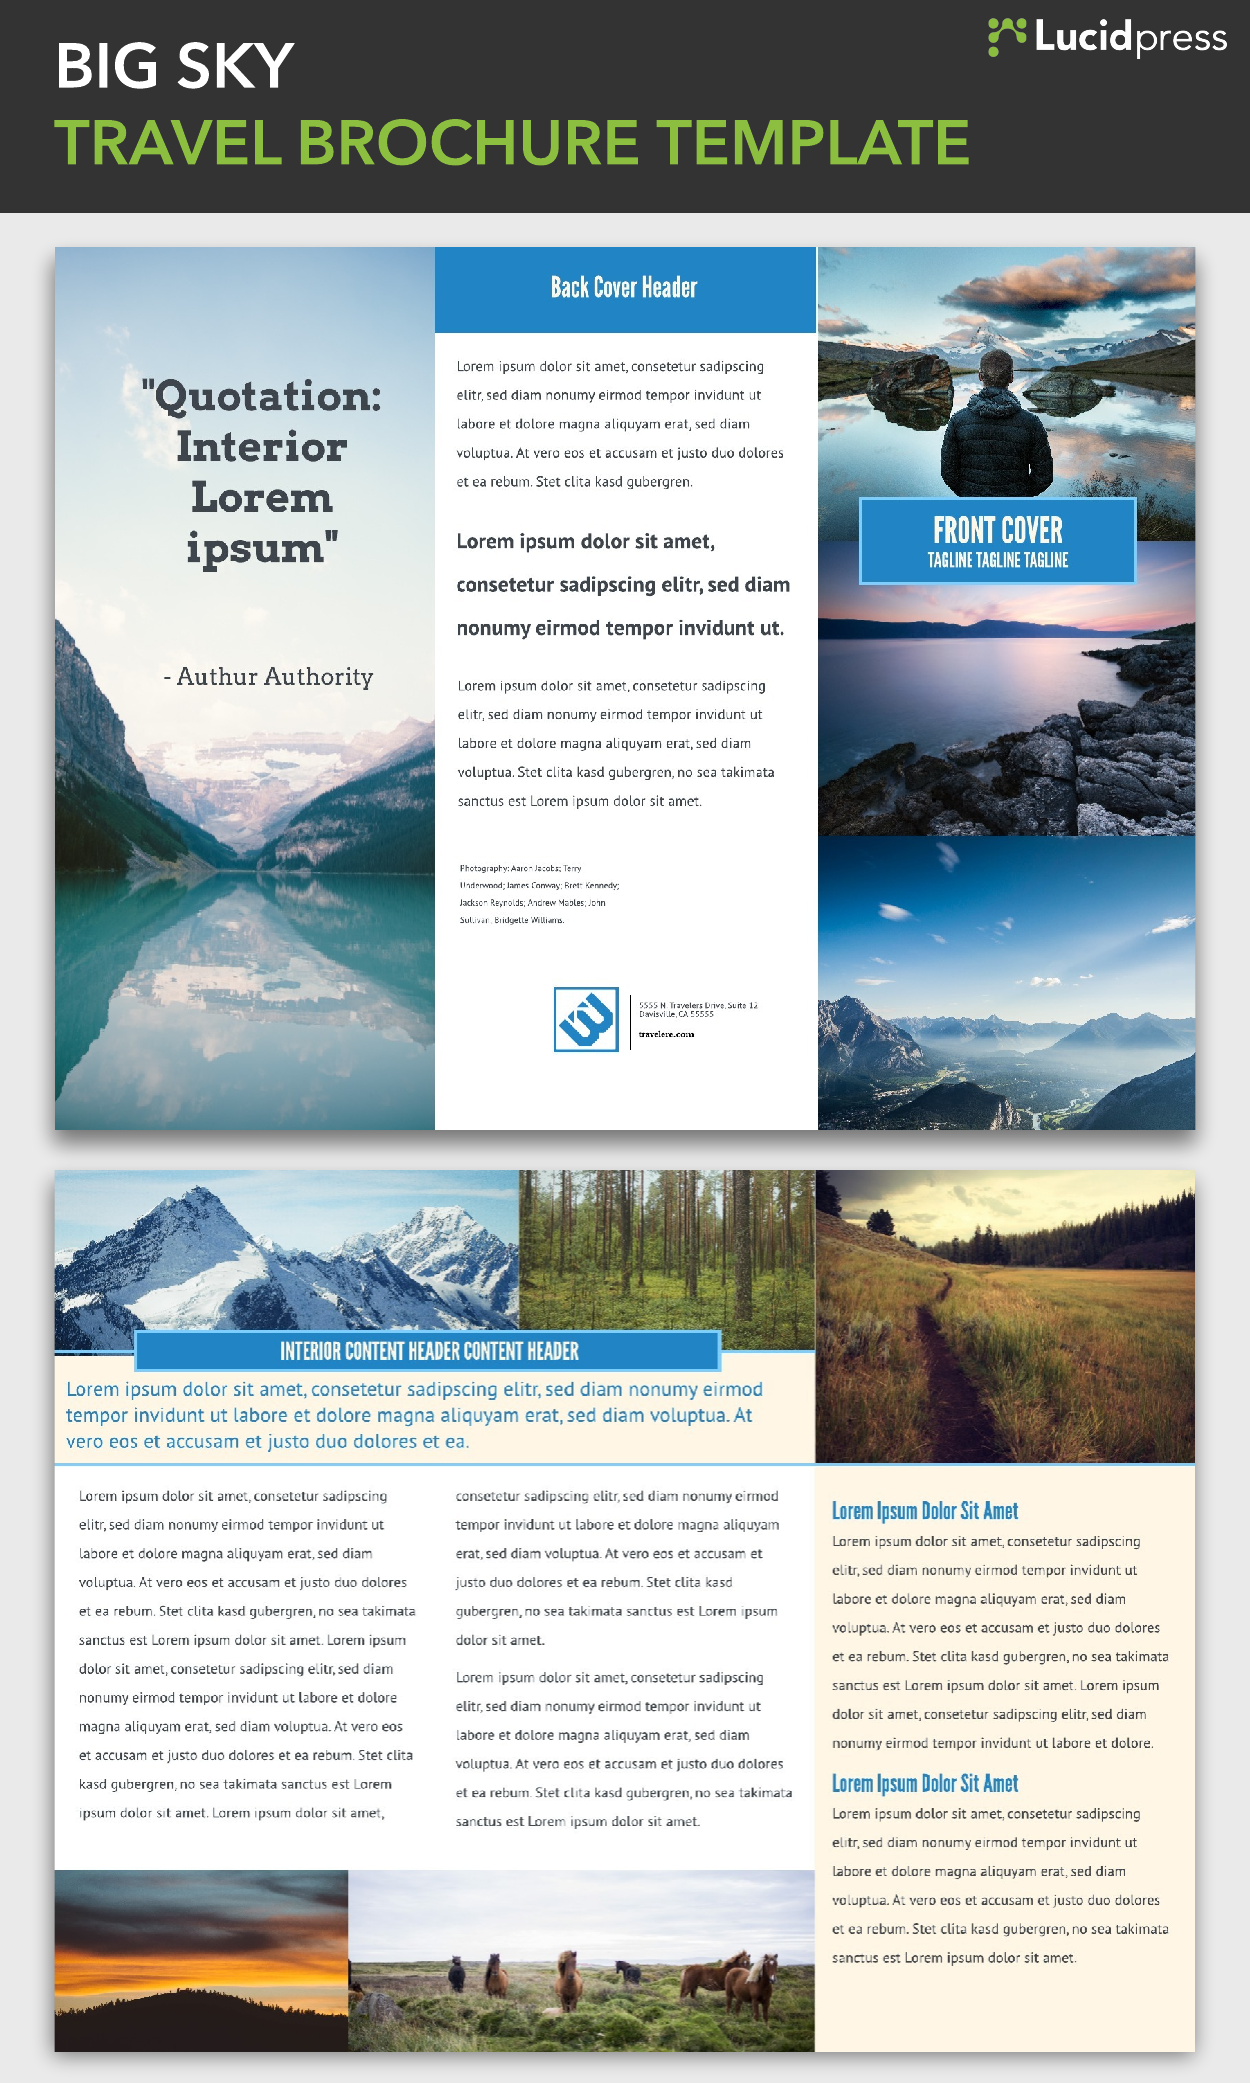 Big Sky TriFold Brochure Template  Via Lucidpress  See More